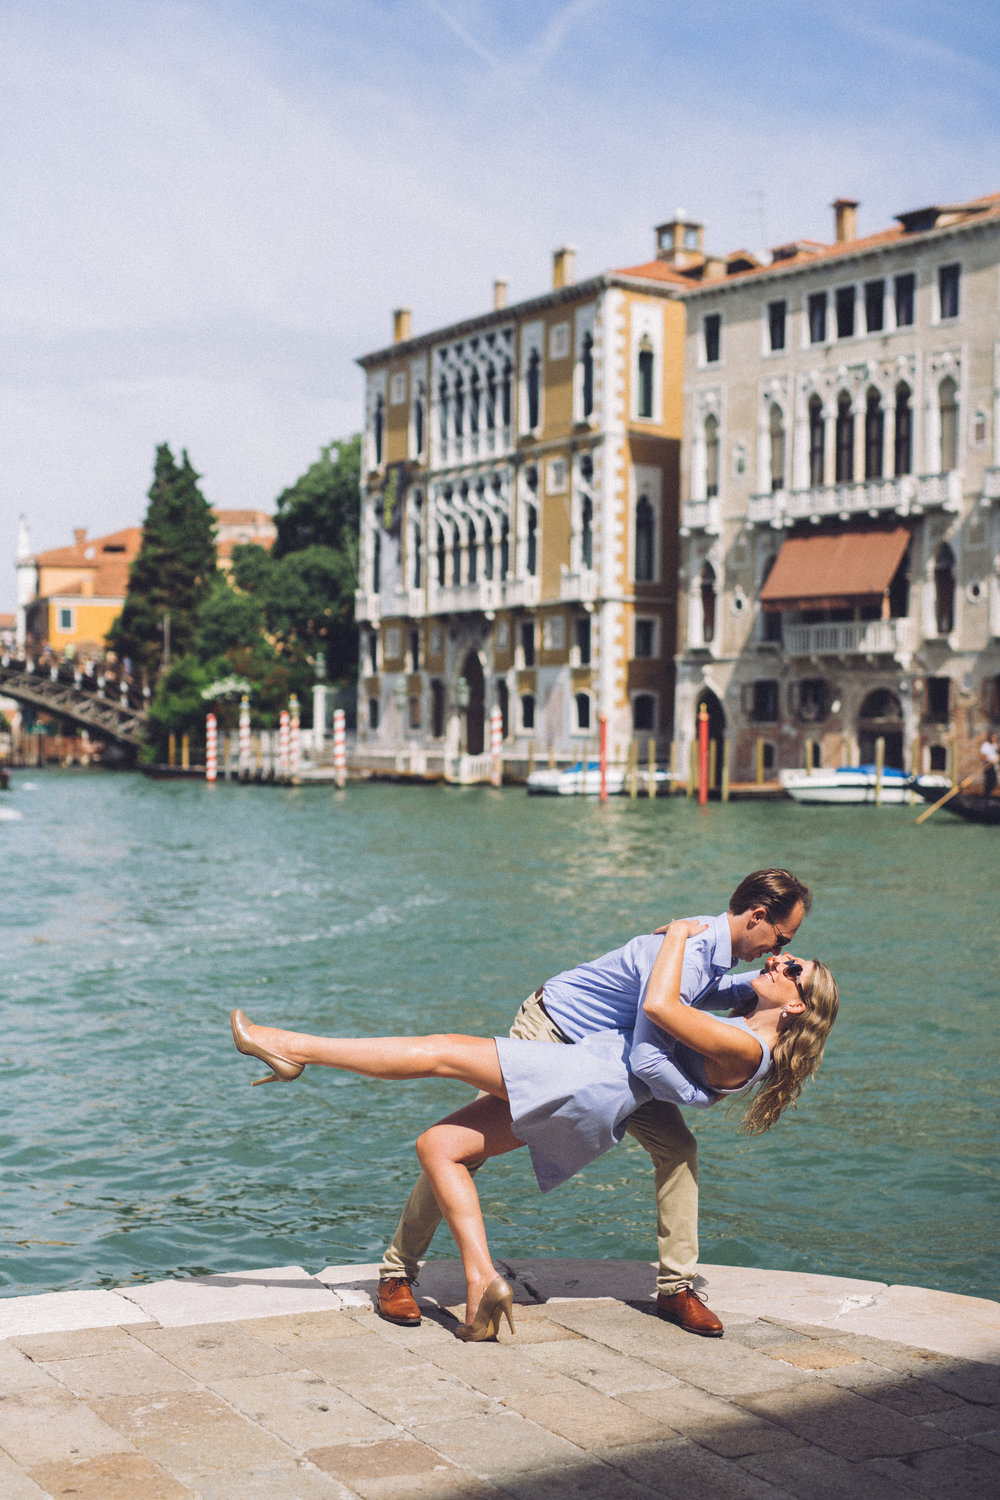 Dreaming of a trip to Venice, Italy? check out 50 photos of the Venice Canals to fuel your wanderlust! | Travel + Vacation Photographer | Family Vacations | Engagement Proposals | Honeymoons | Anniversary Gifts | Bachelorette Ideas | Solo Traveller Tips |  Flytographer captures your travel memories - everything from surprise proposals, honeymoons, family vacations, and more.